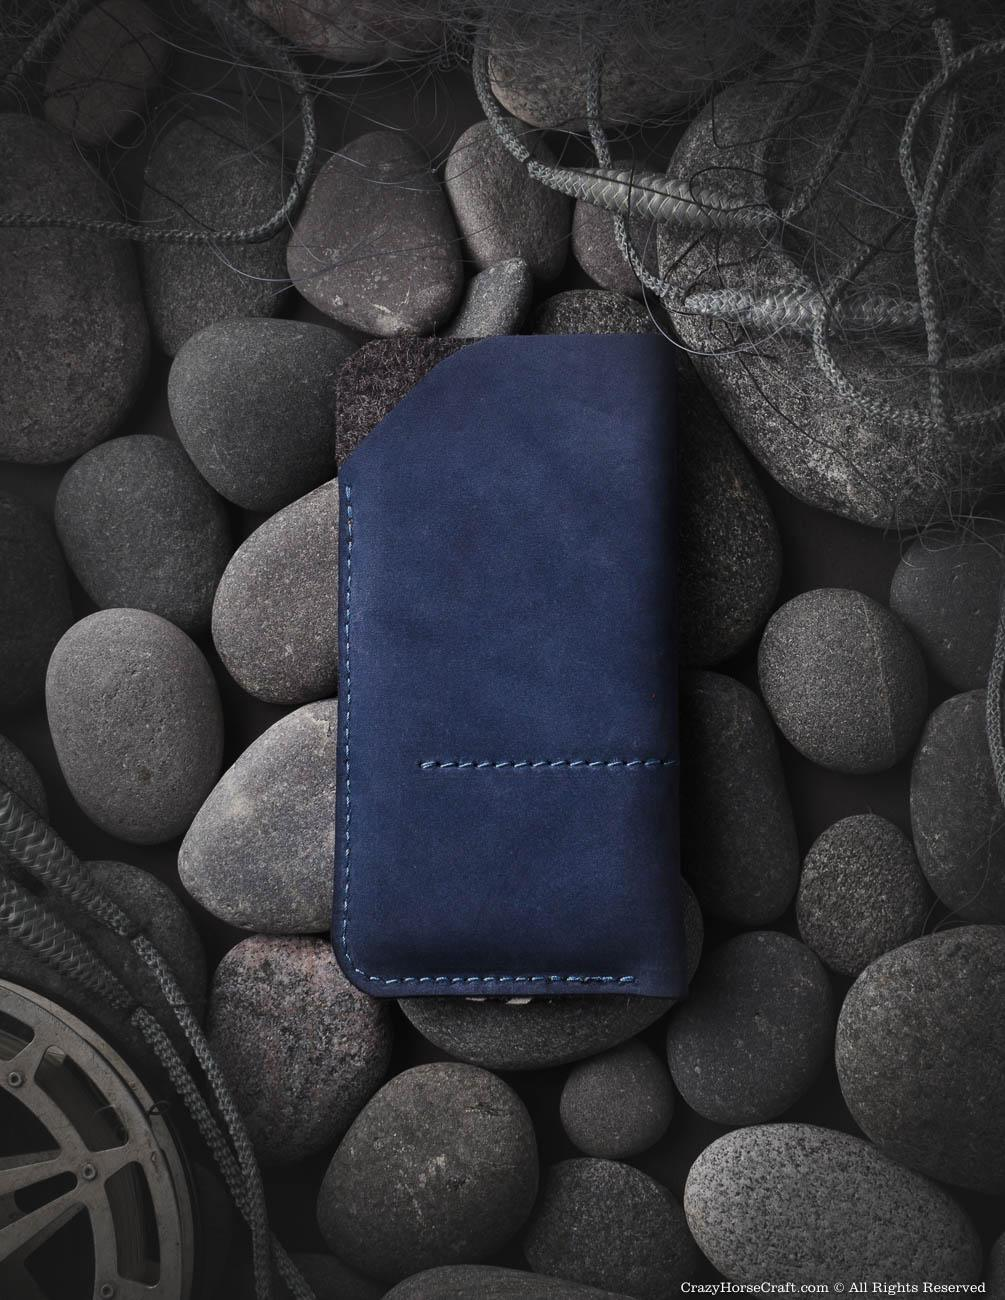 wool felt, iphone Xr, Xs, Xs Max sleeves, iphone leather cover, Leather iphone X plus sleeve, blue, felt, back